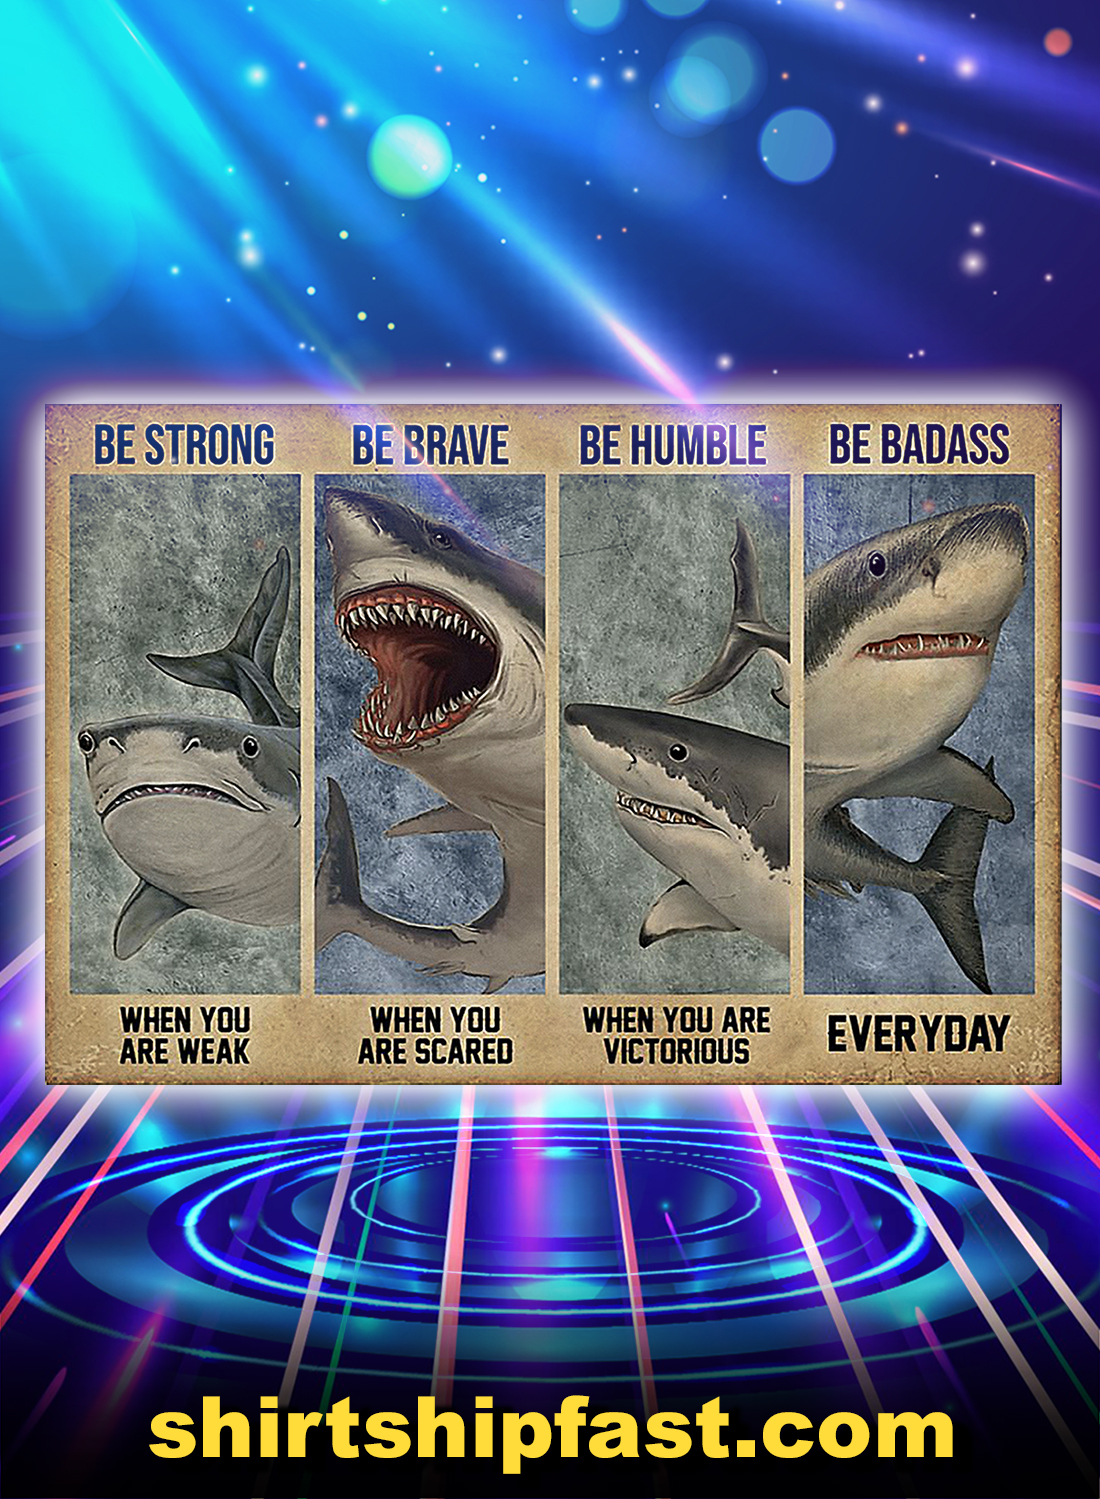 Shark be strong be brave be humble be badass poster - A4